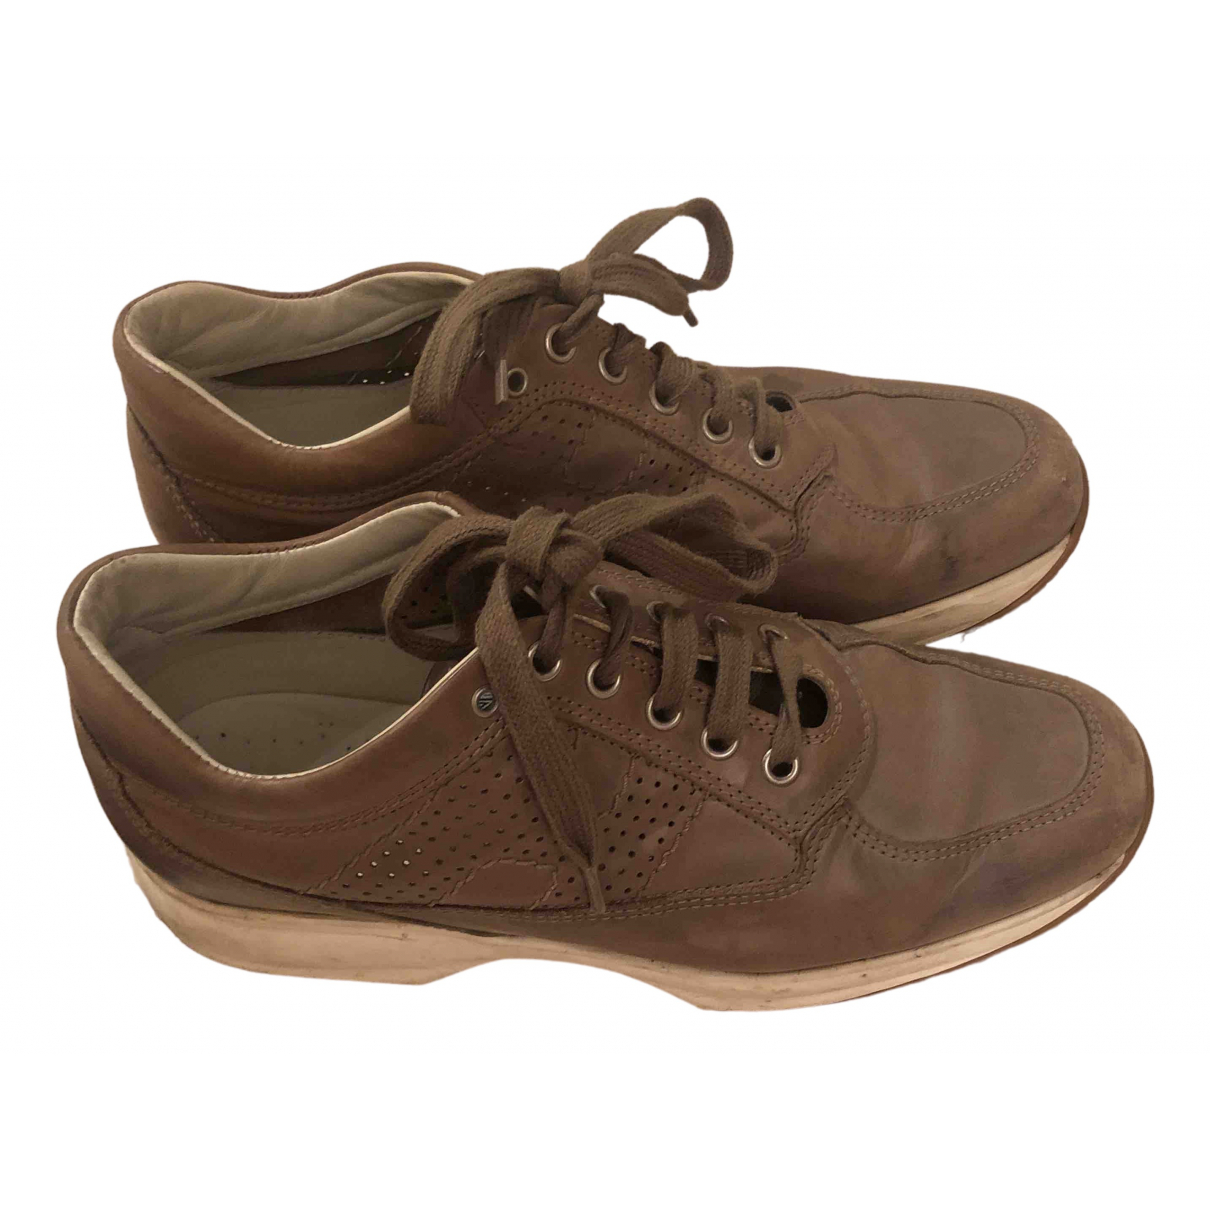 Hogan \N Sneakers in  Beige Leder